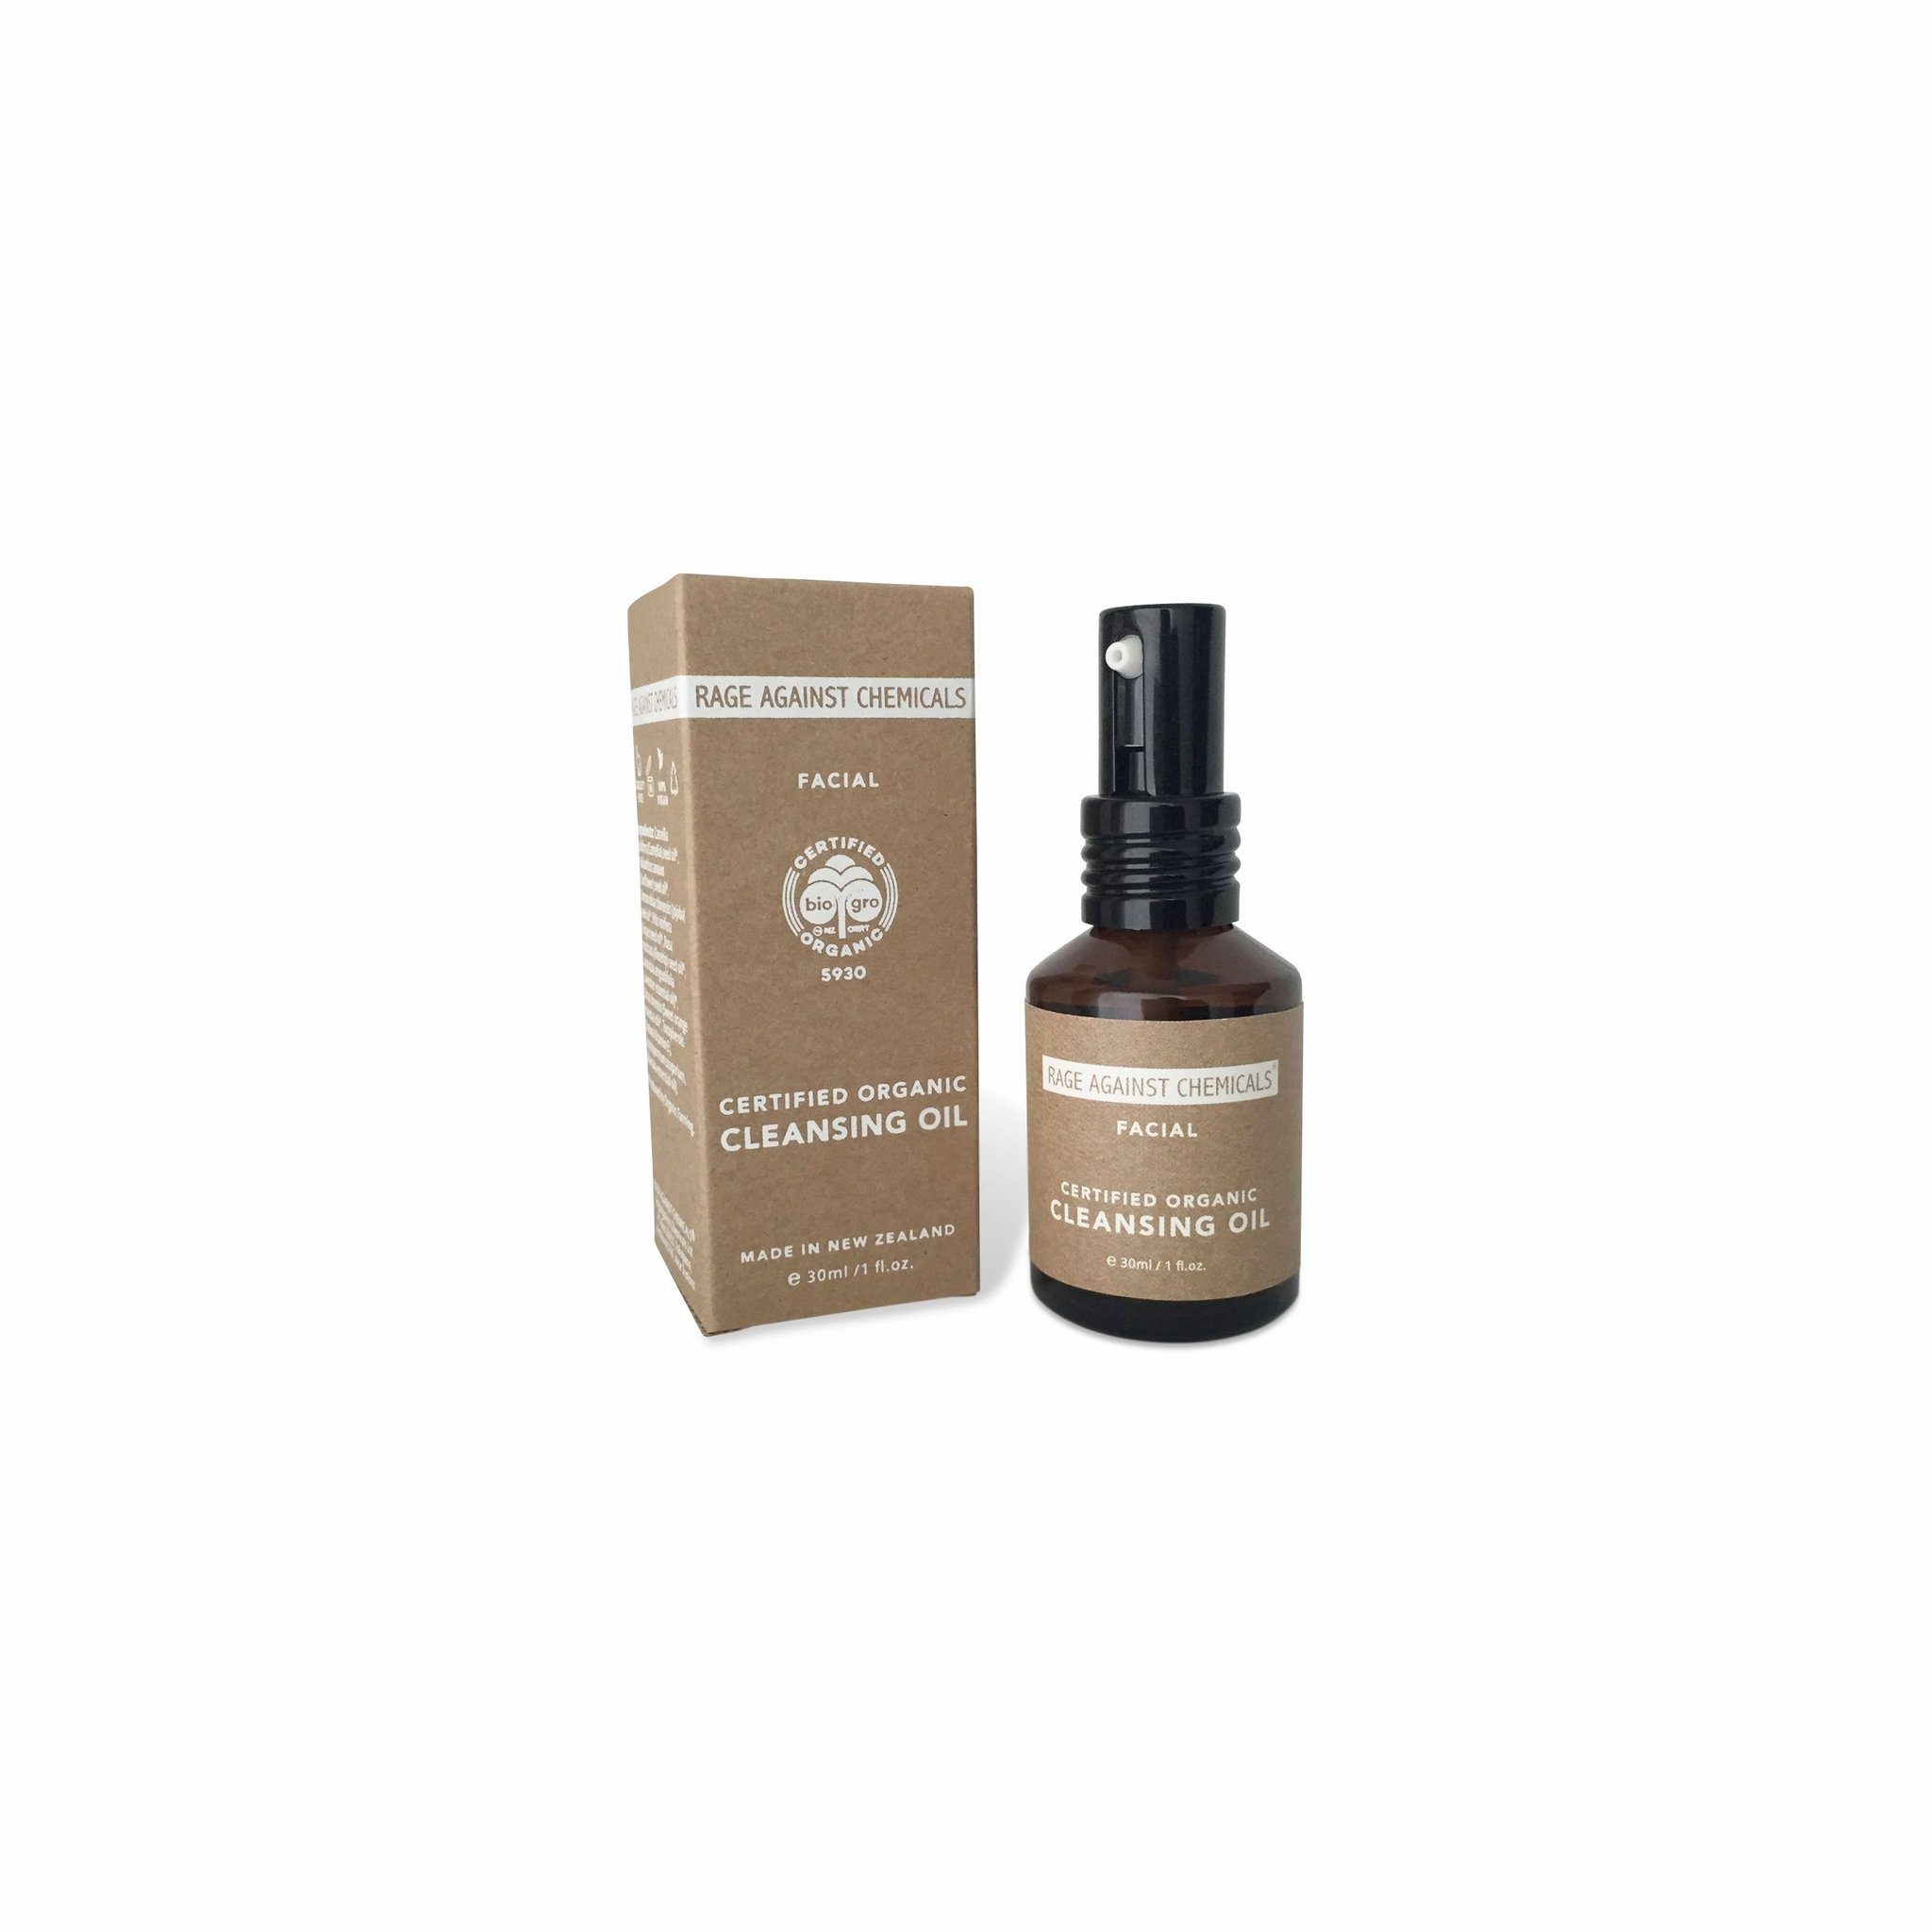 Facial Cleansing Oil 30ml